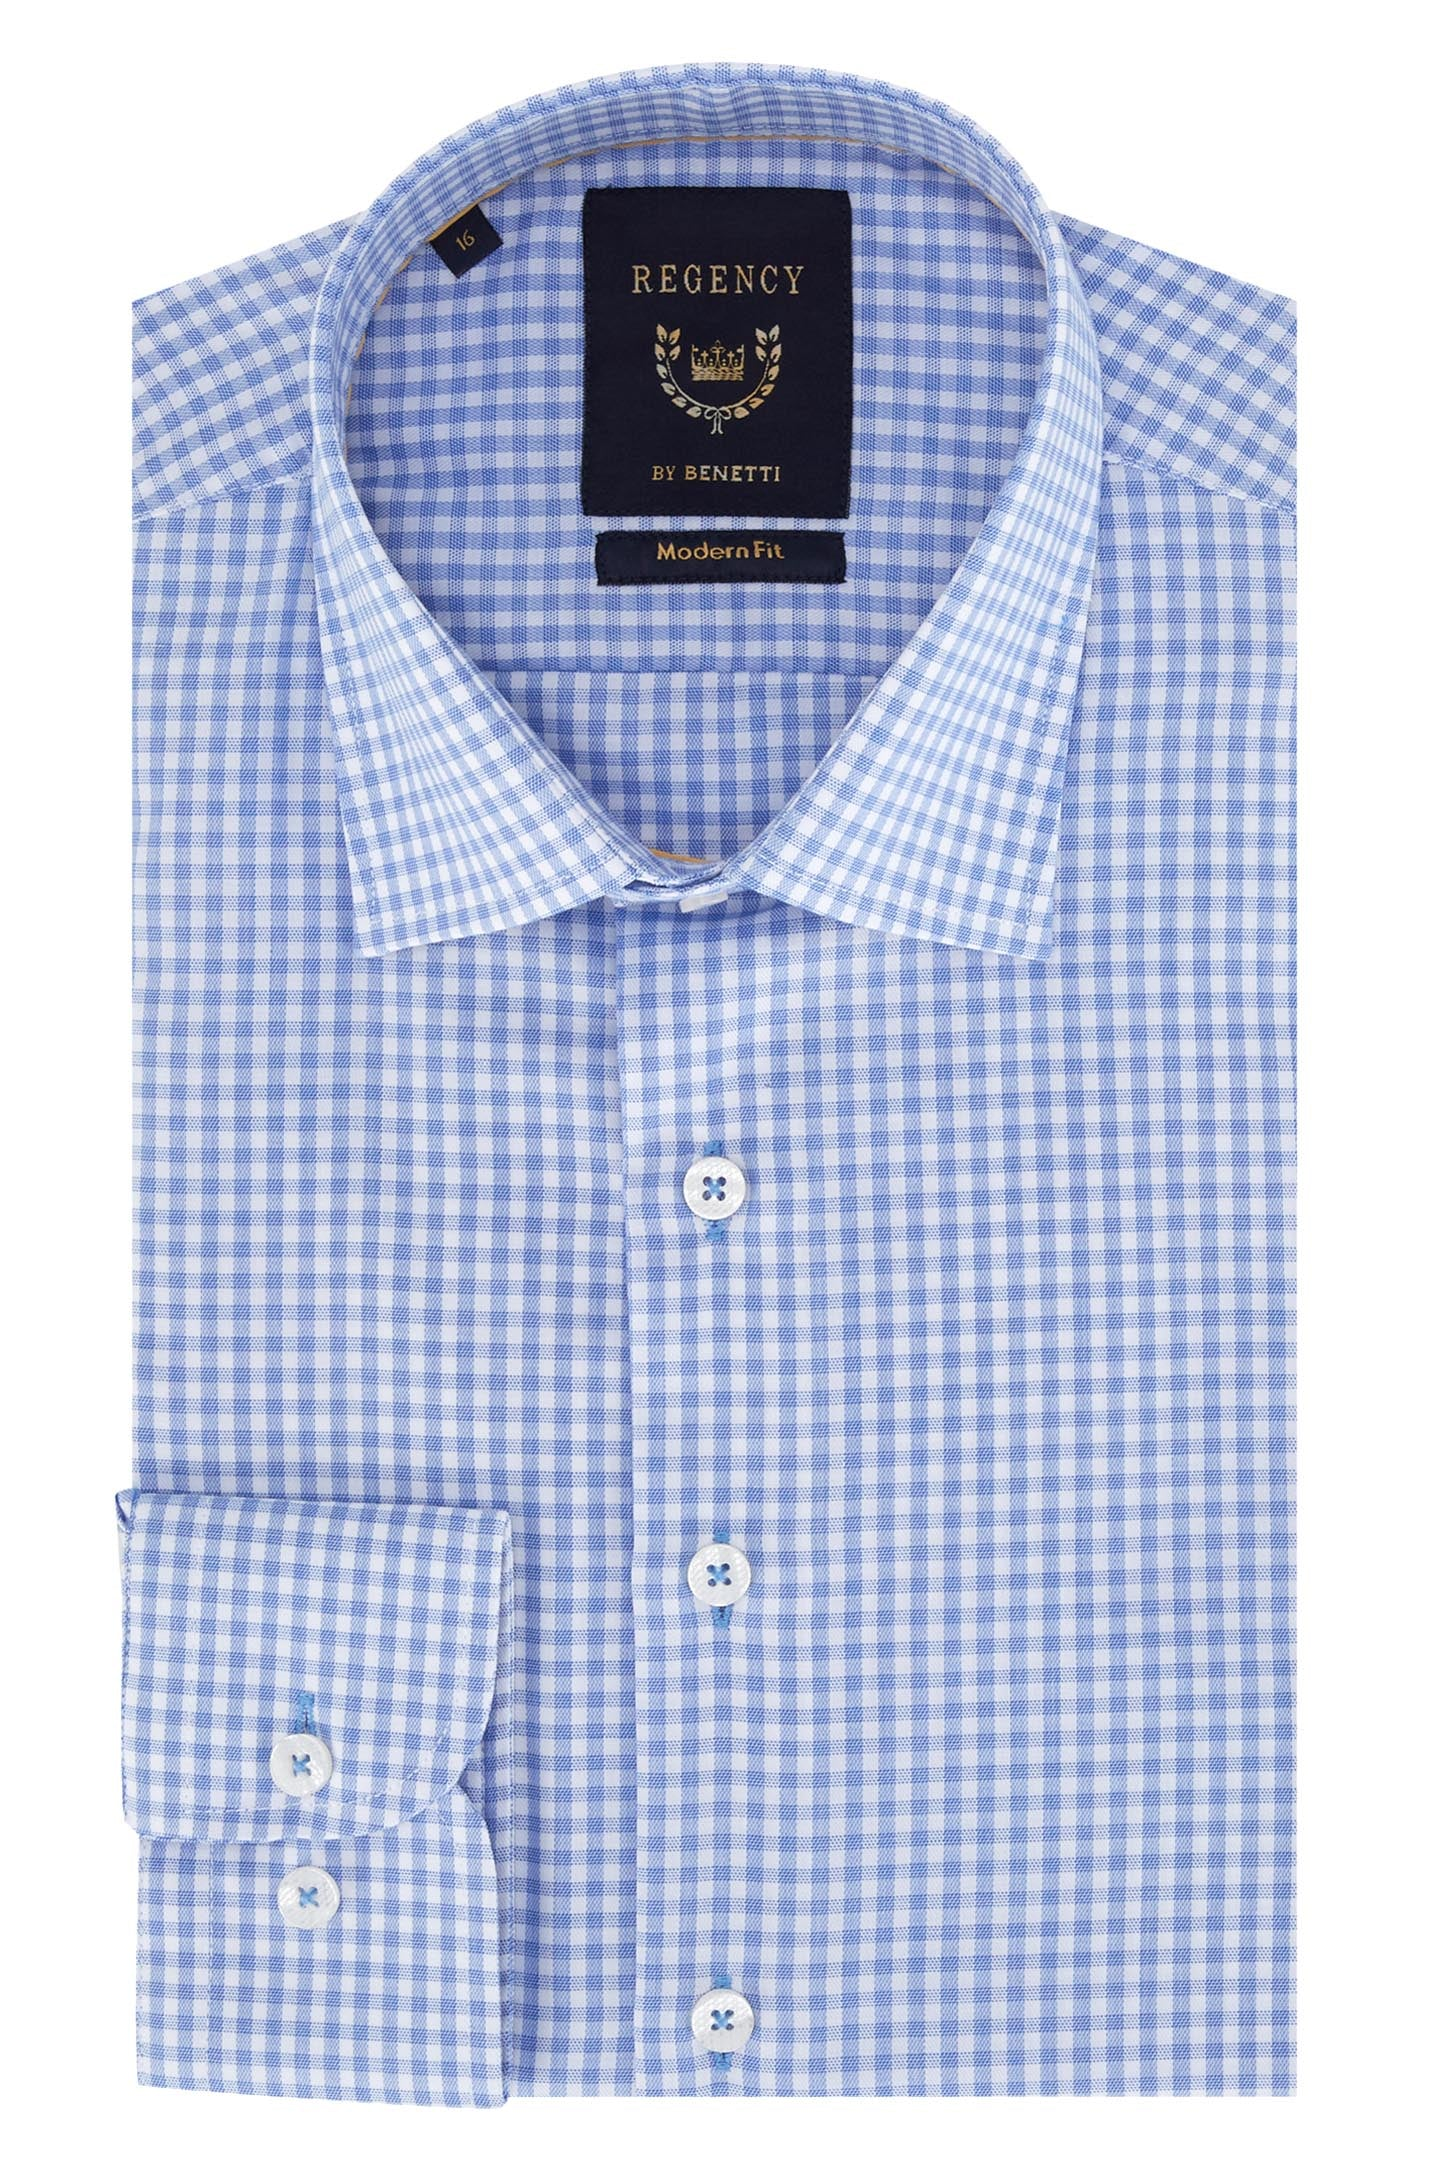 Regency By Benetti Evan Gingham Shirt